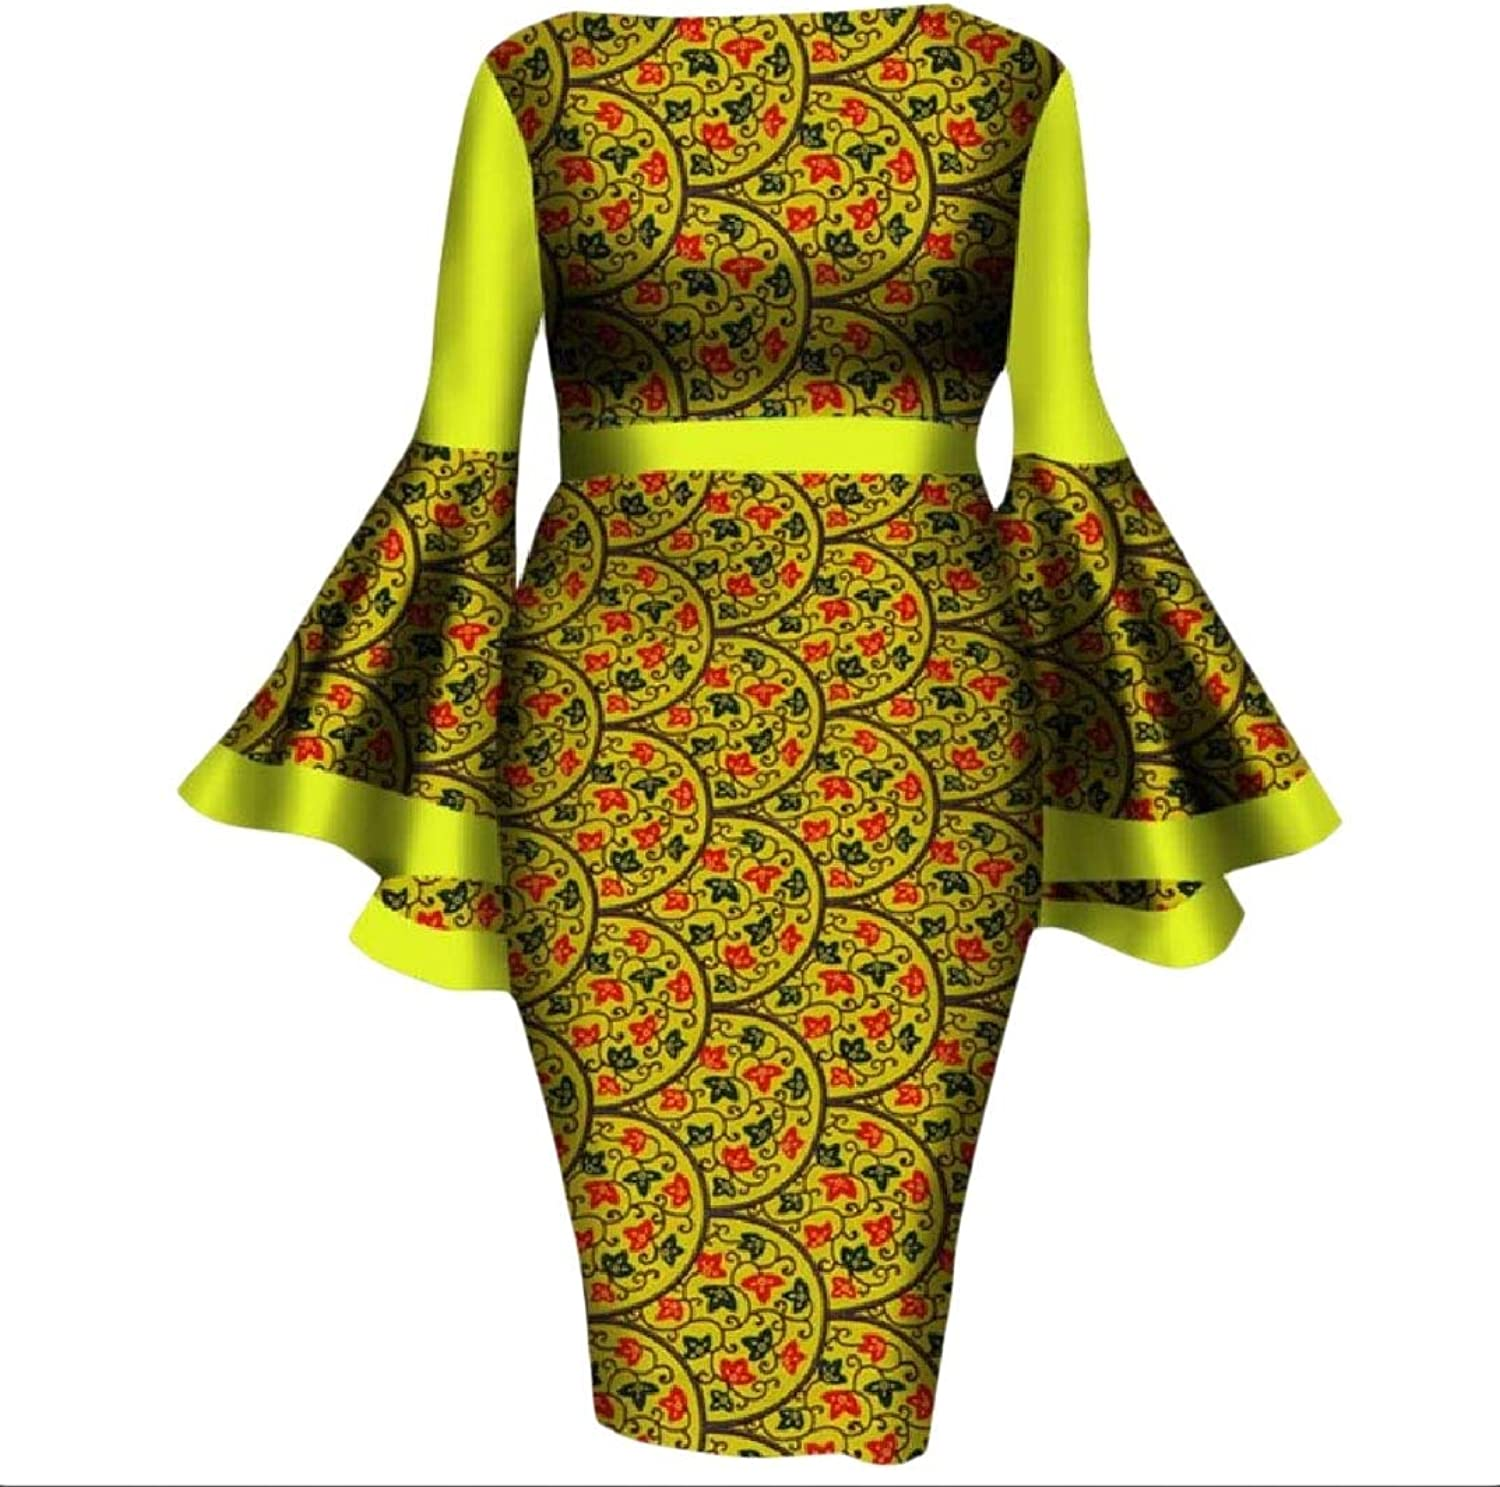 Cheelot Women's Party Plus Size African Print Dashiki Sexy Pencil Dress